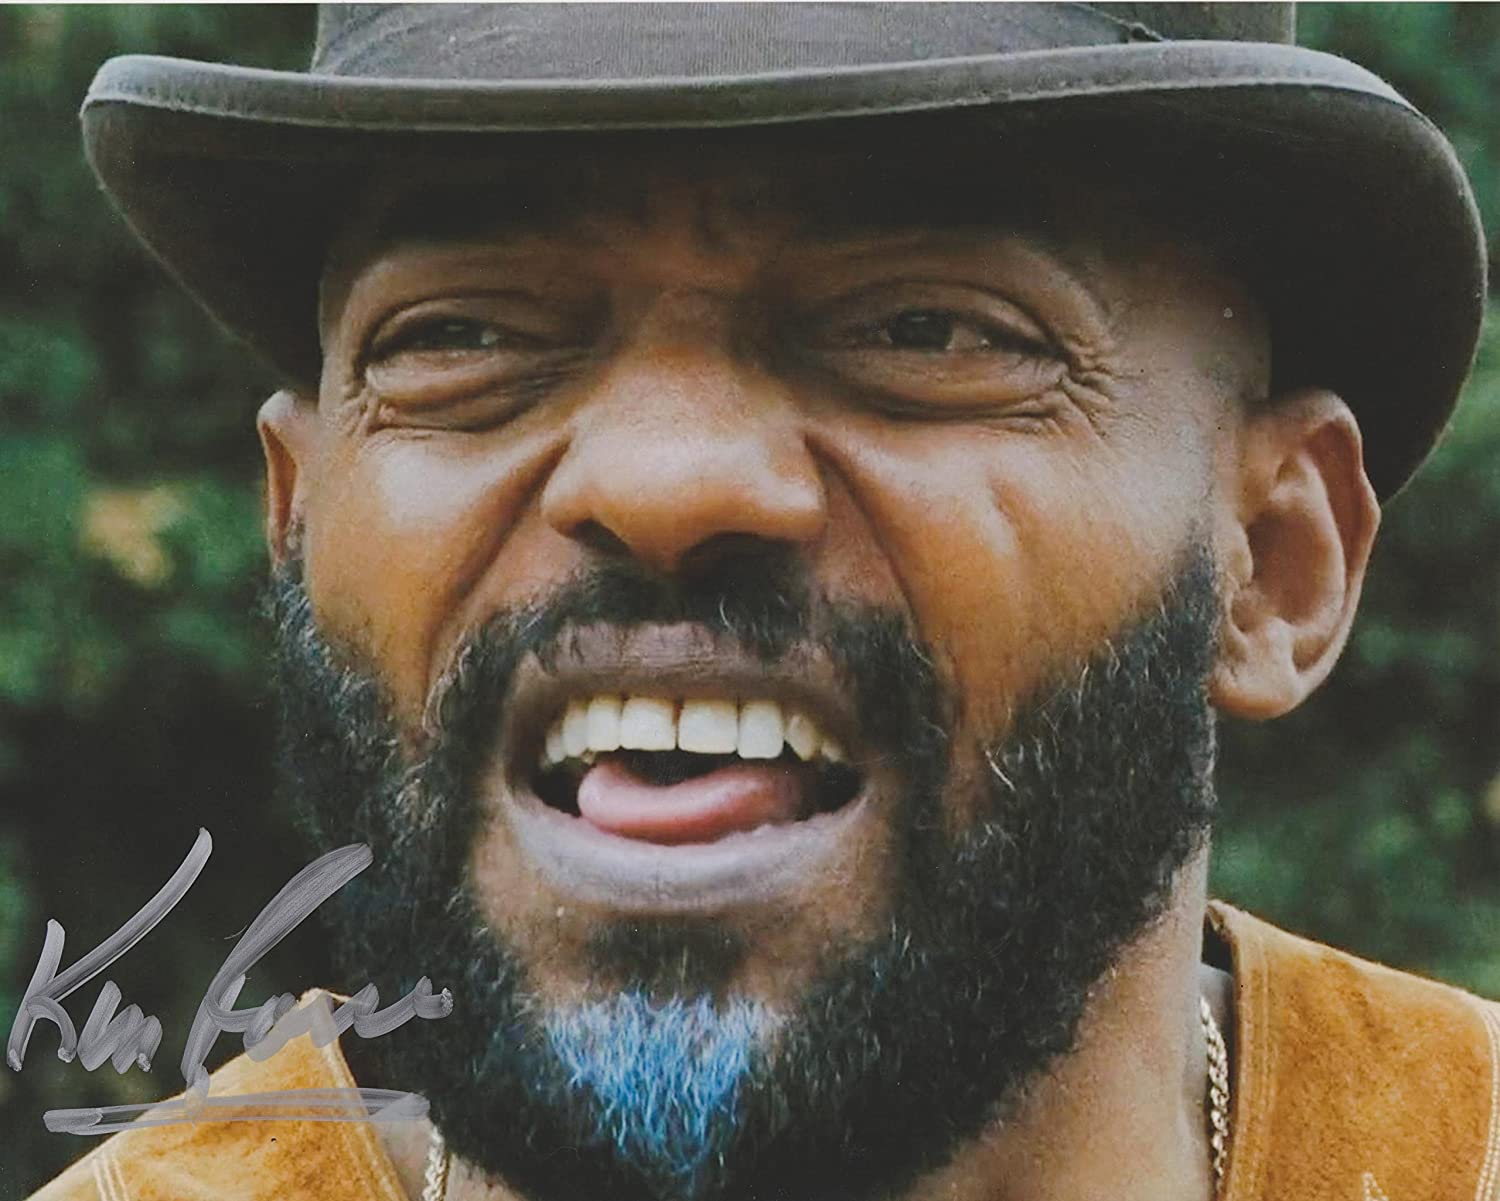 Ken Foree Devils Rejects Original Autographed 8x10 Photo At Amazon S Entertainment Collectibles Store Ken foree is a 72 year old american actor. ken foree devils rejects original